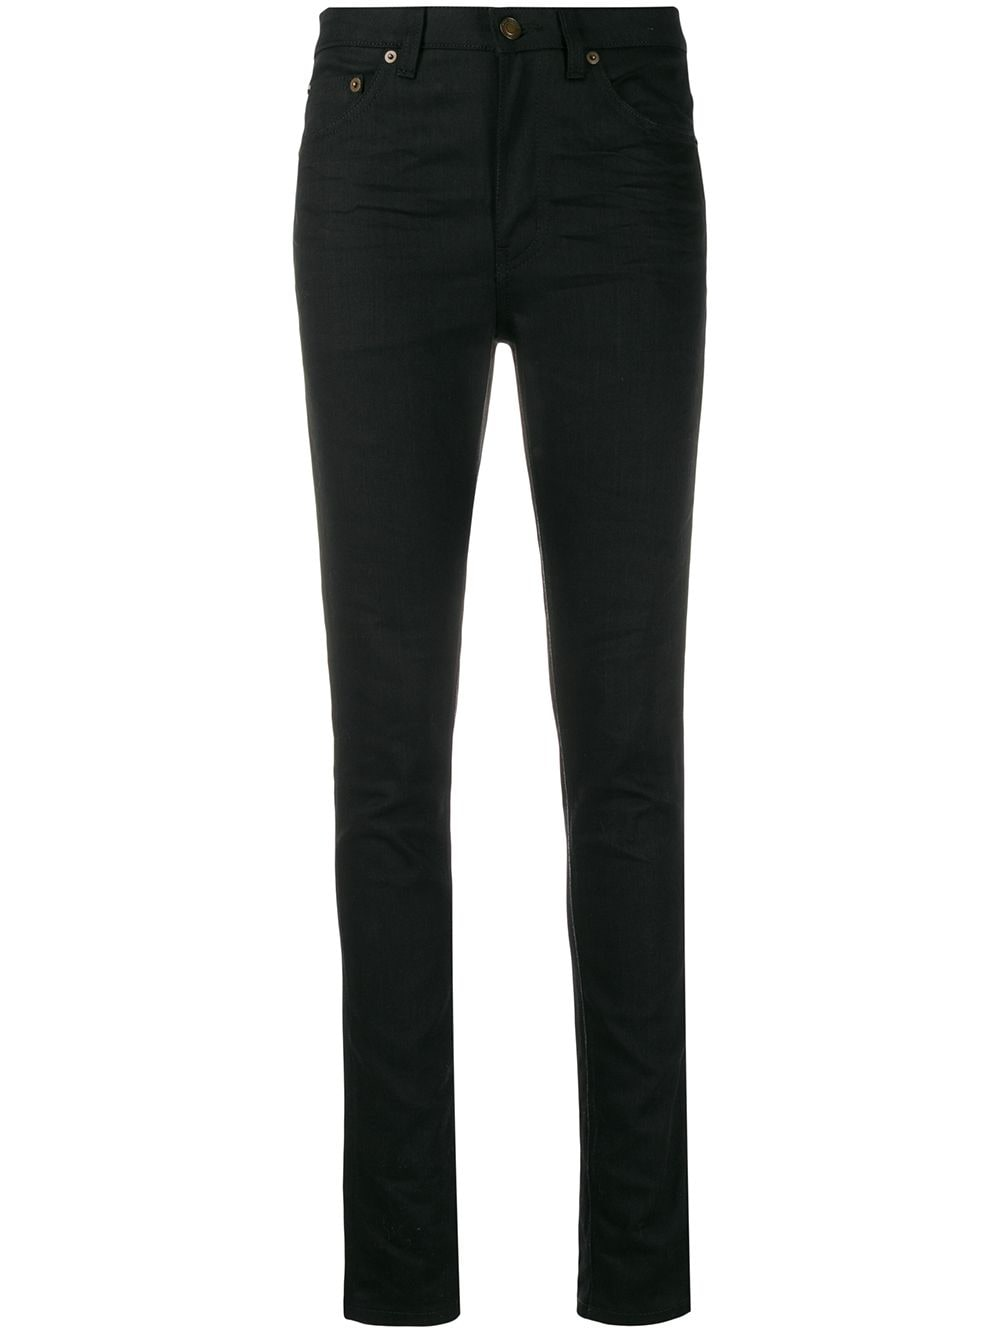 Saint Laurent mid-rise skinny jeans - Black von Saint Laurent